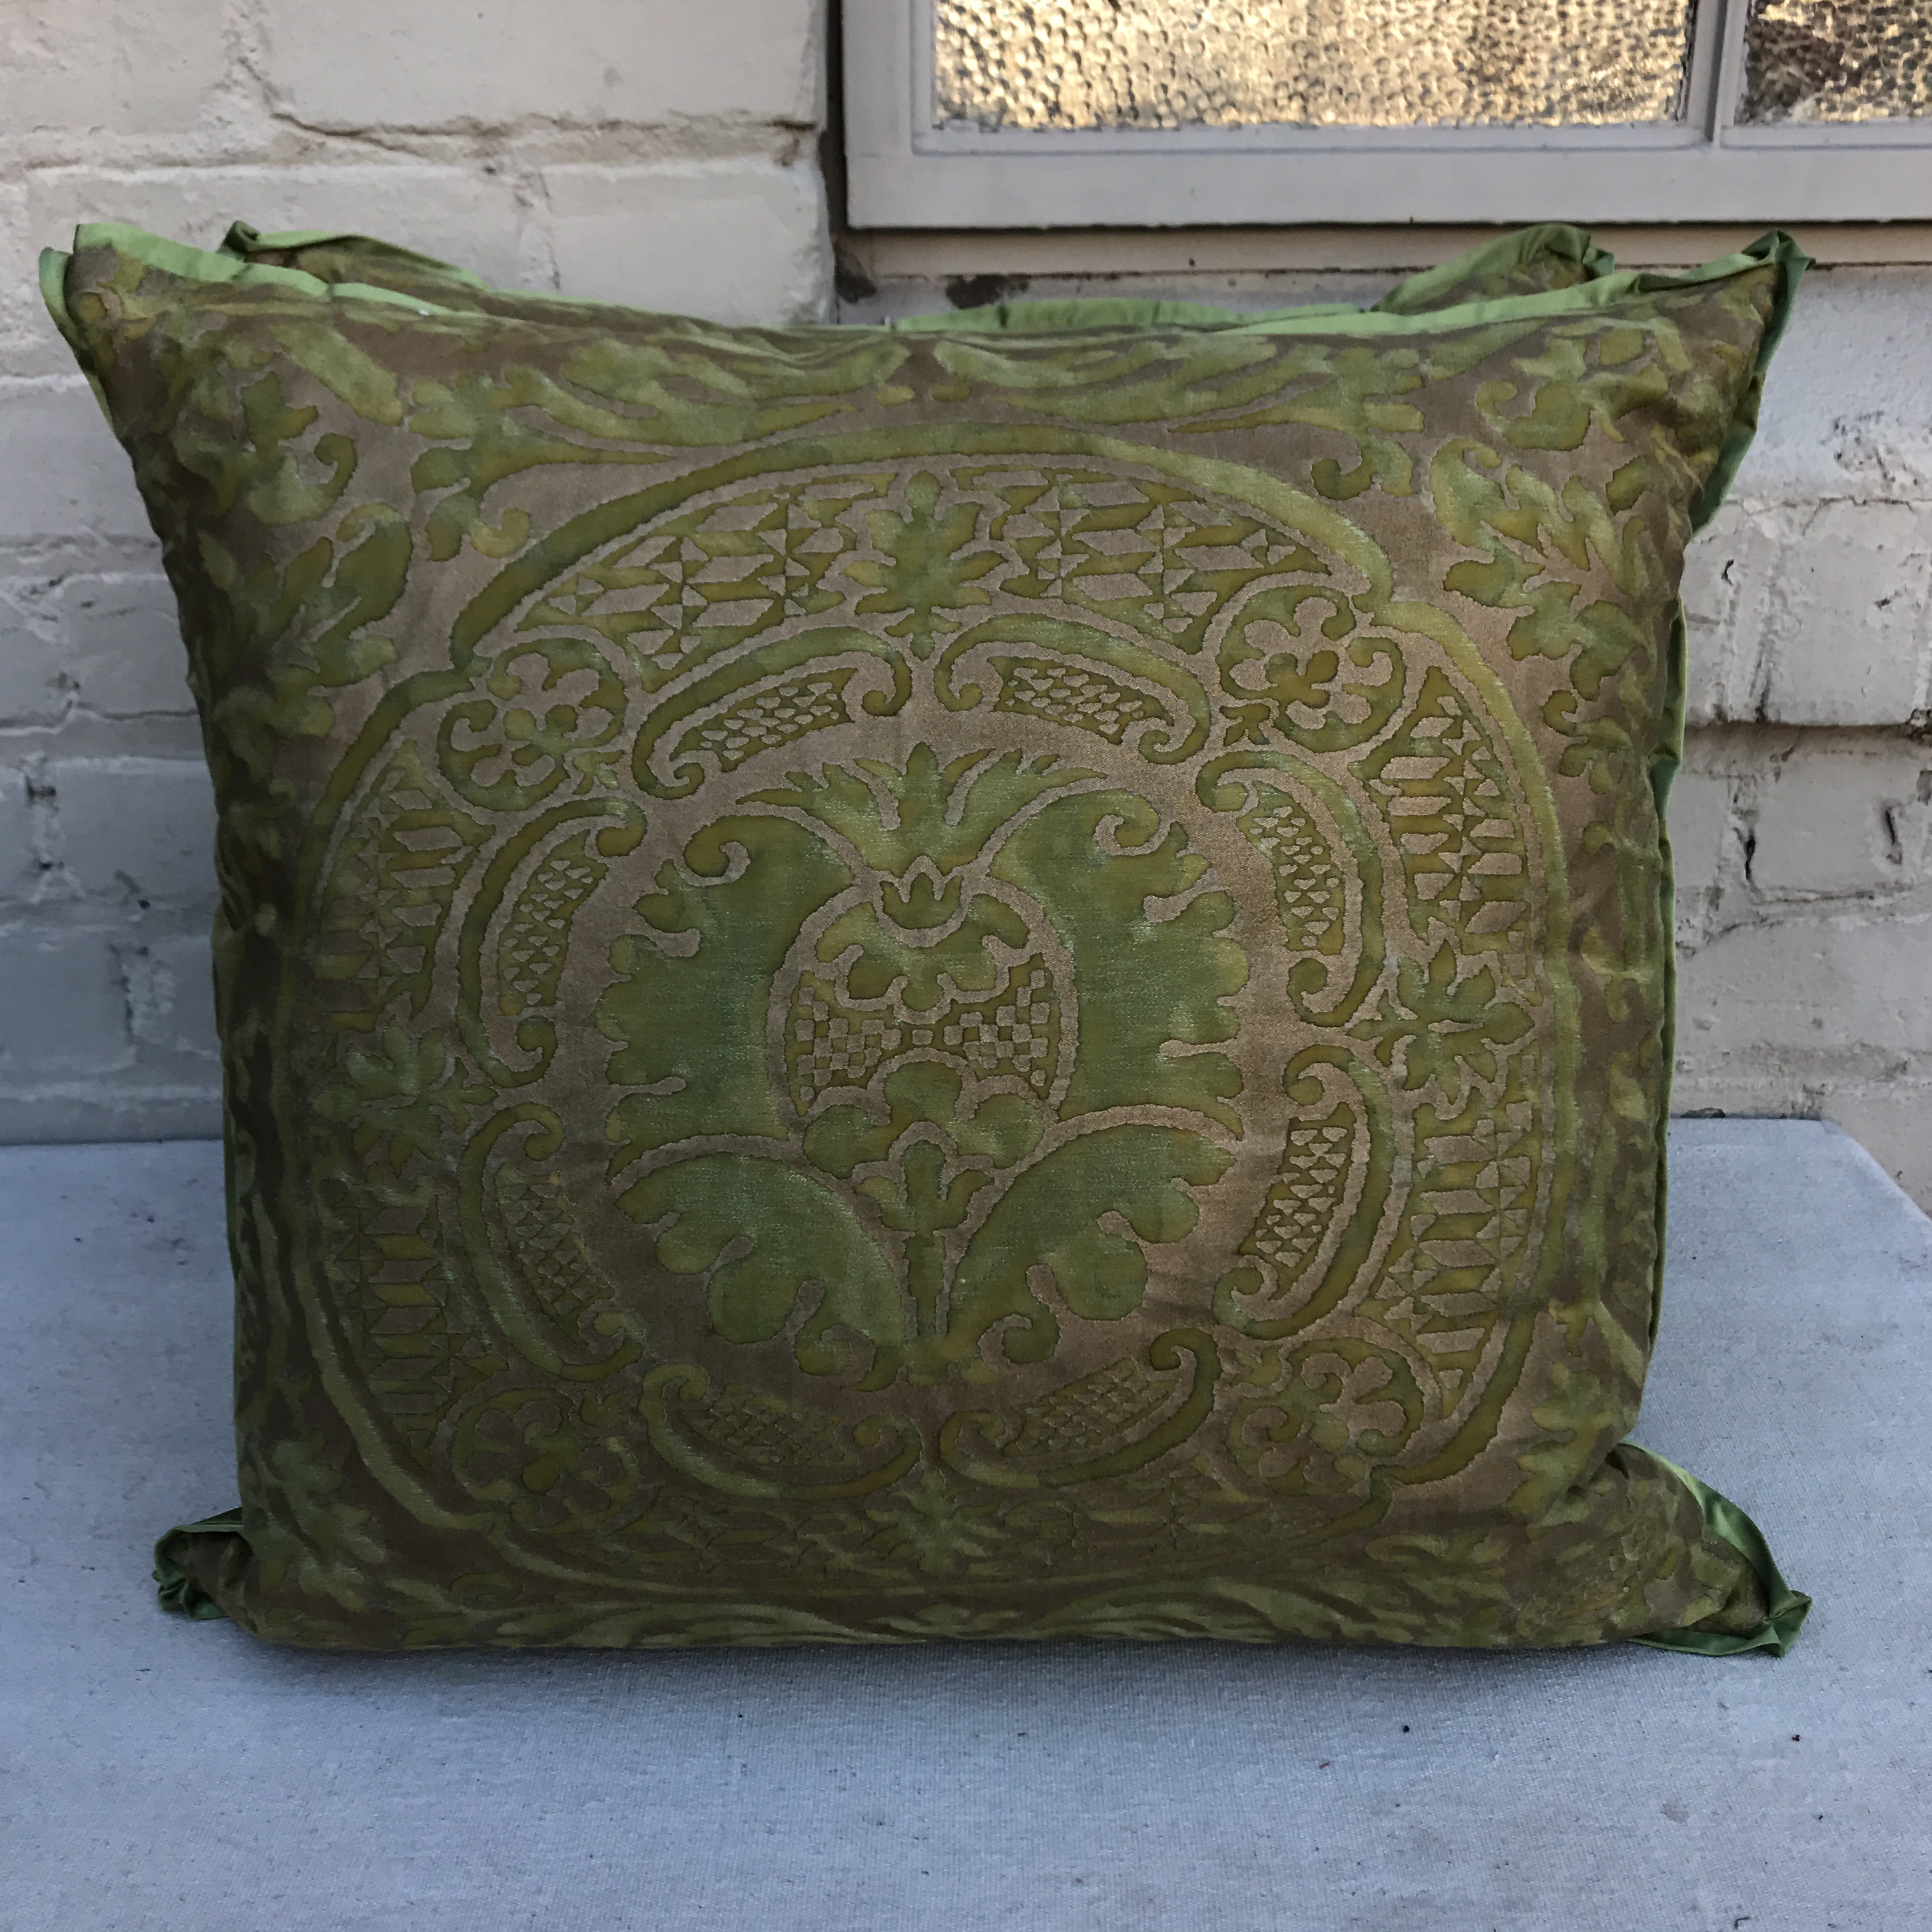 Orsini Green U0026 Gold Fortuny Pillows   A Pair   Image 2 ...